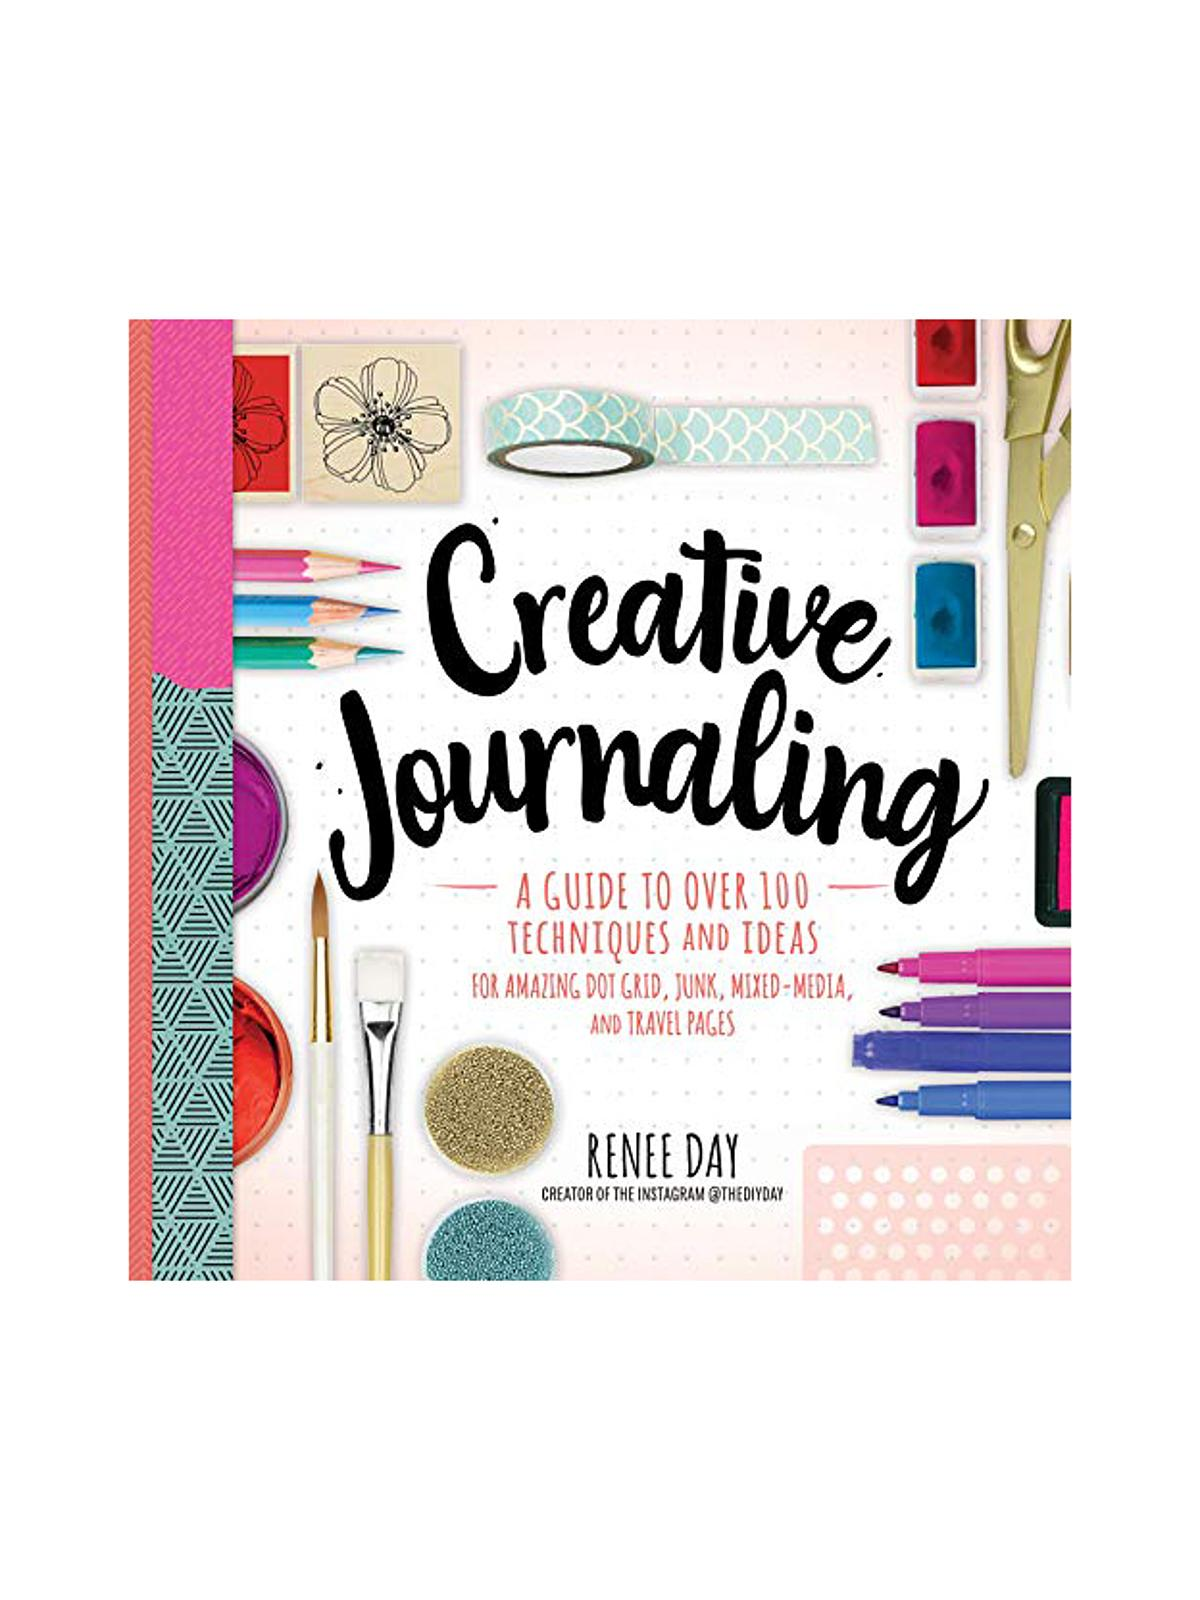 A Creative Guide to Journaling